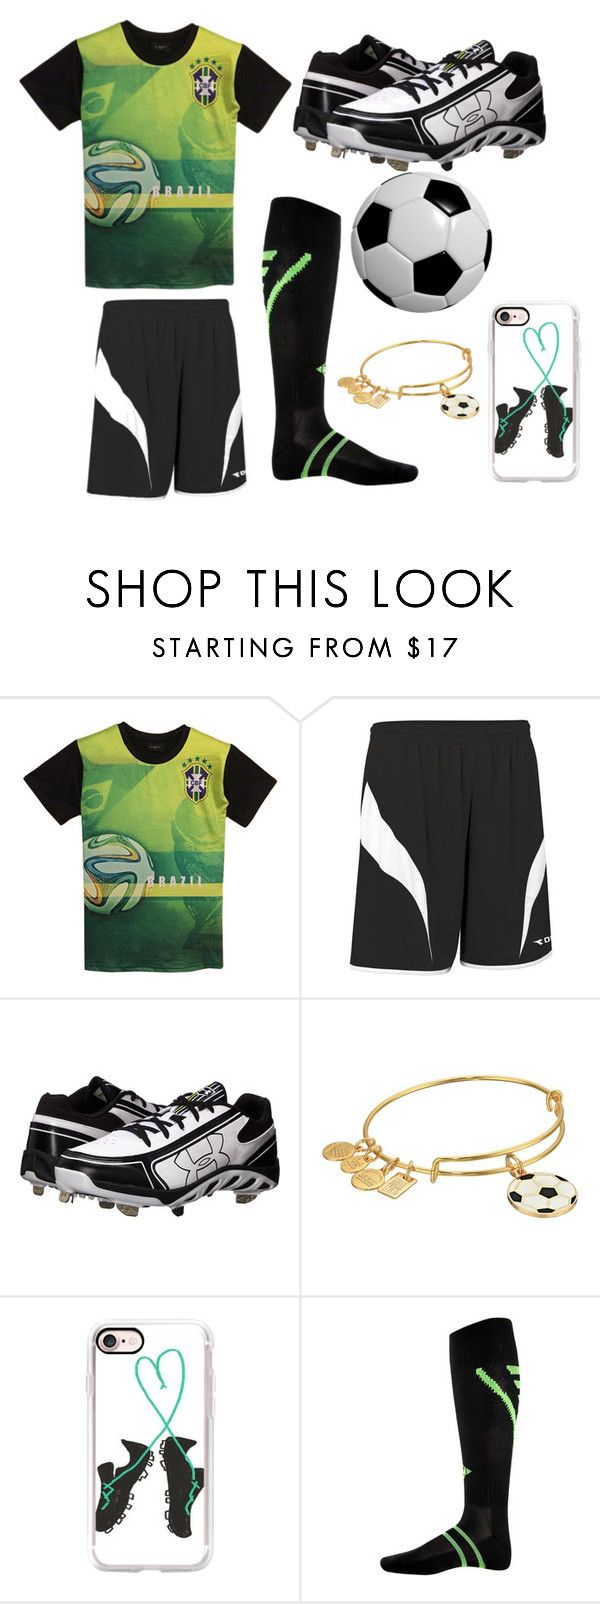 """""""soccer player"""" by lauren53103 on Polyvore featuring Diadora, Under Armour, Alex and Ani, Casetify, Franklin, Costume and soccerplayer"""